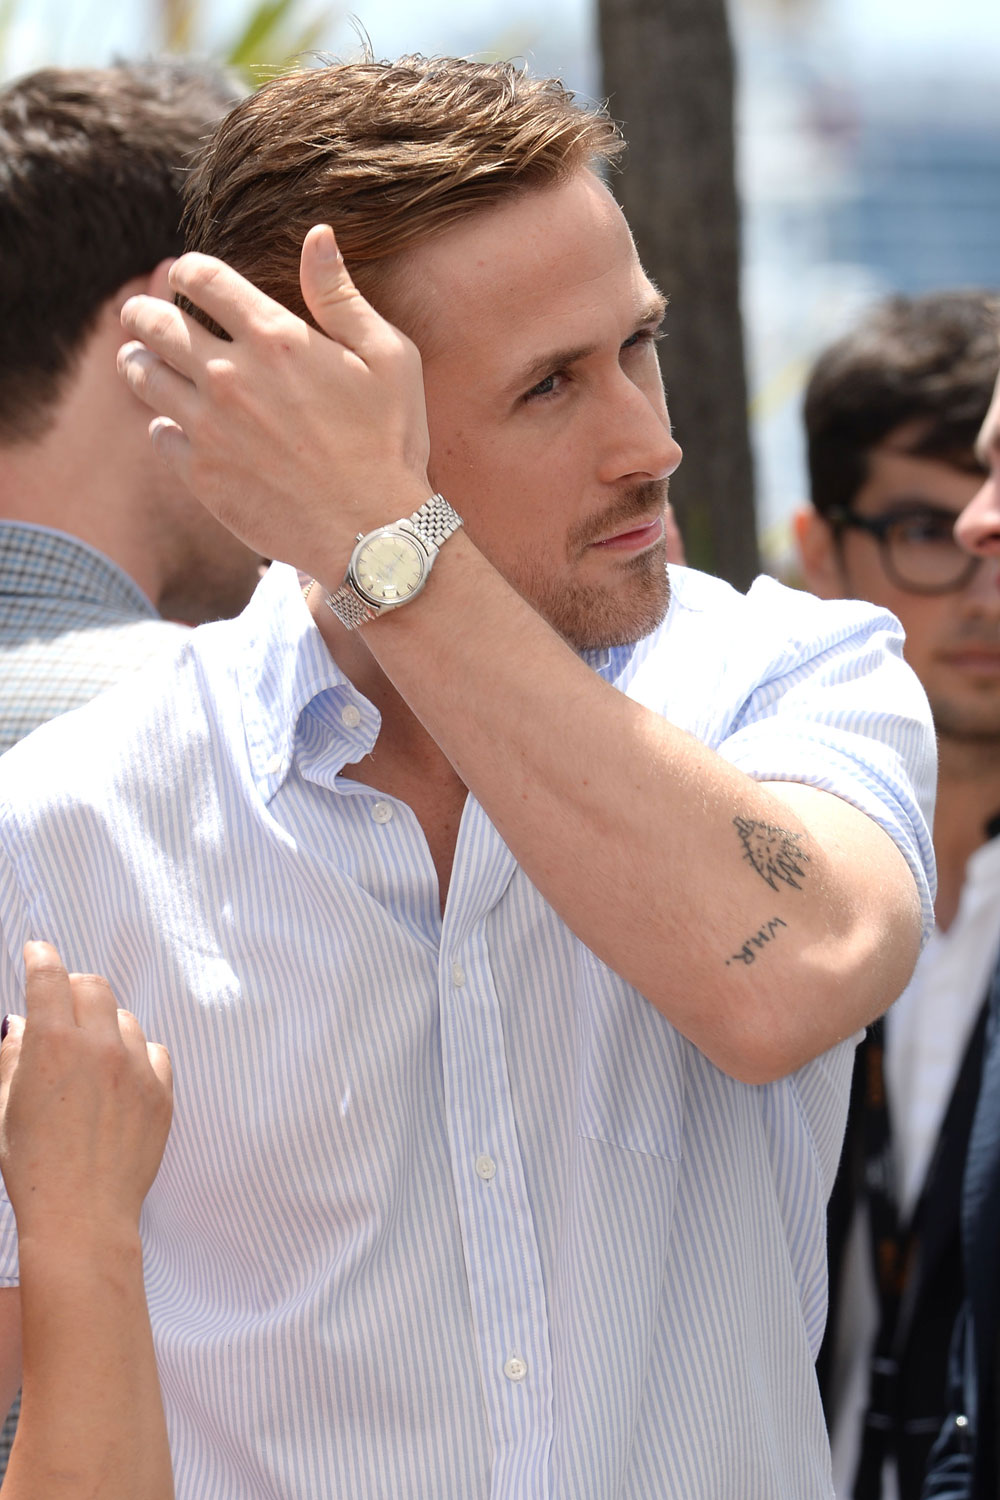 Watch The Photos Of Ryan Gosling In Cannes That We've Been Waiting For video